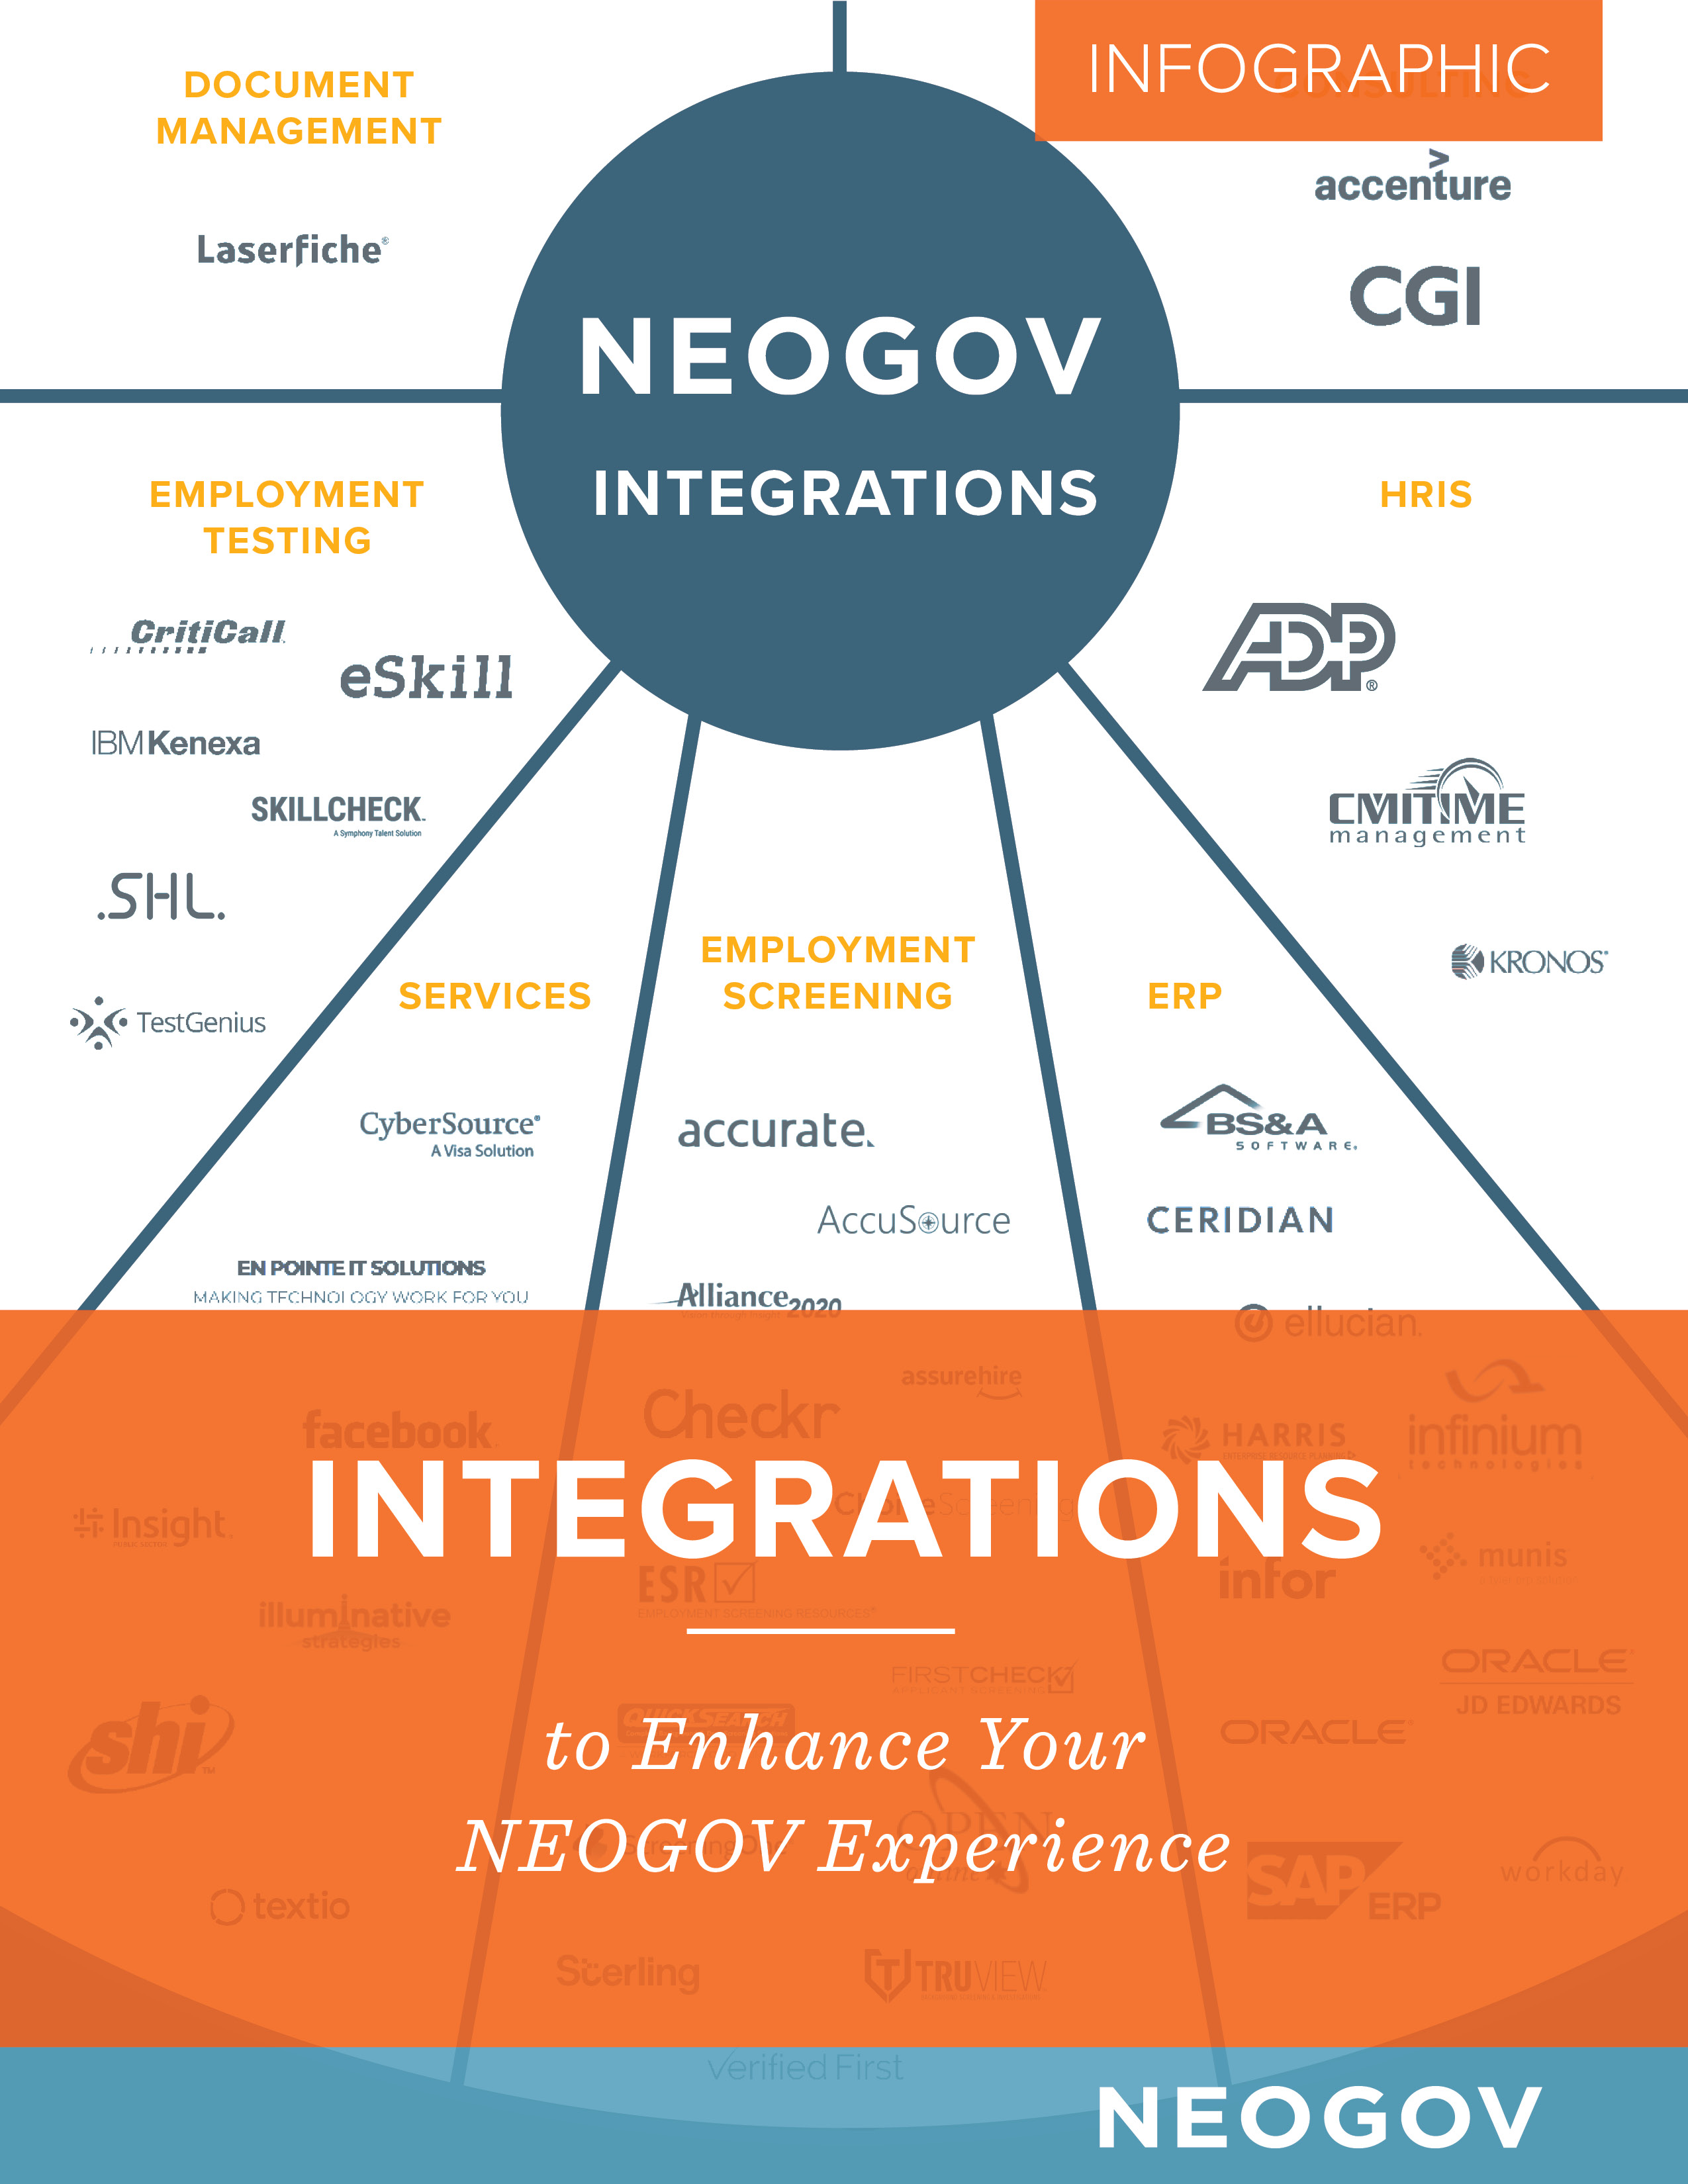 NGV-Infographic-Integrations